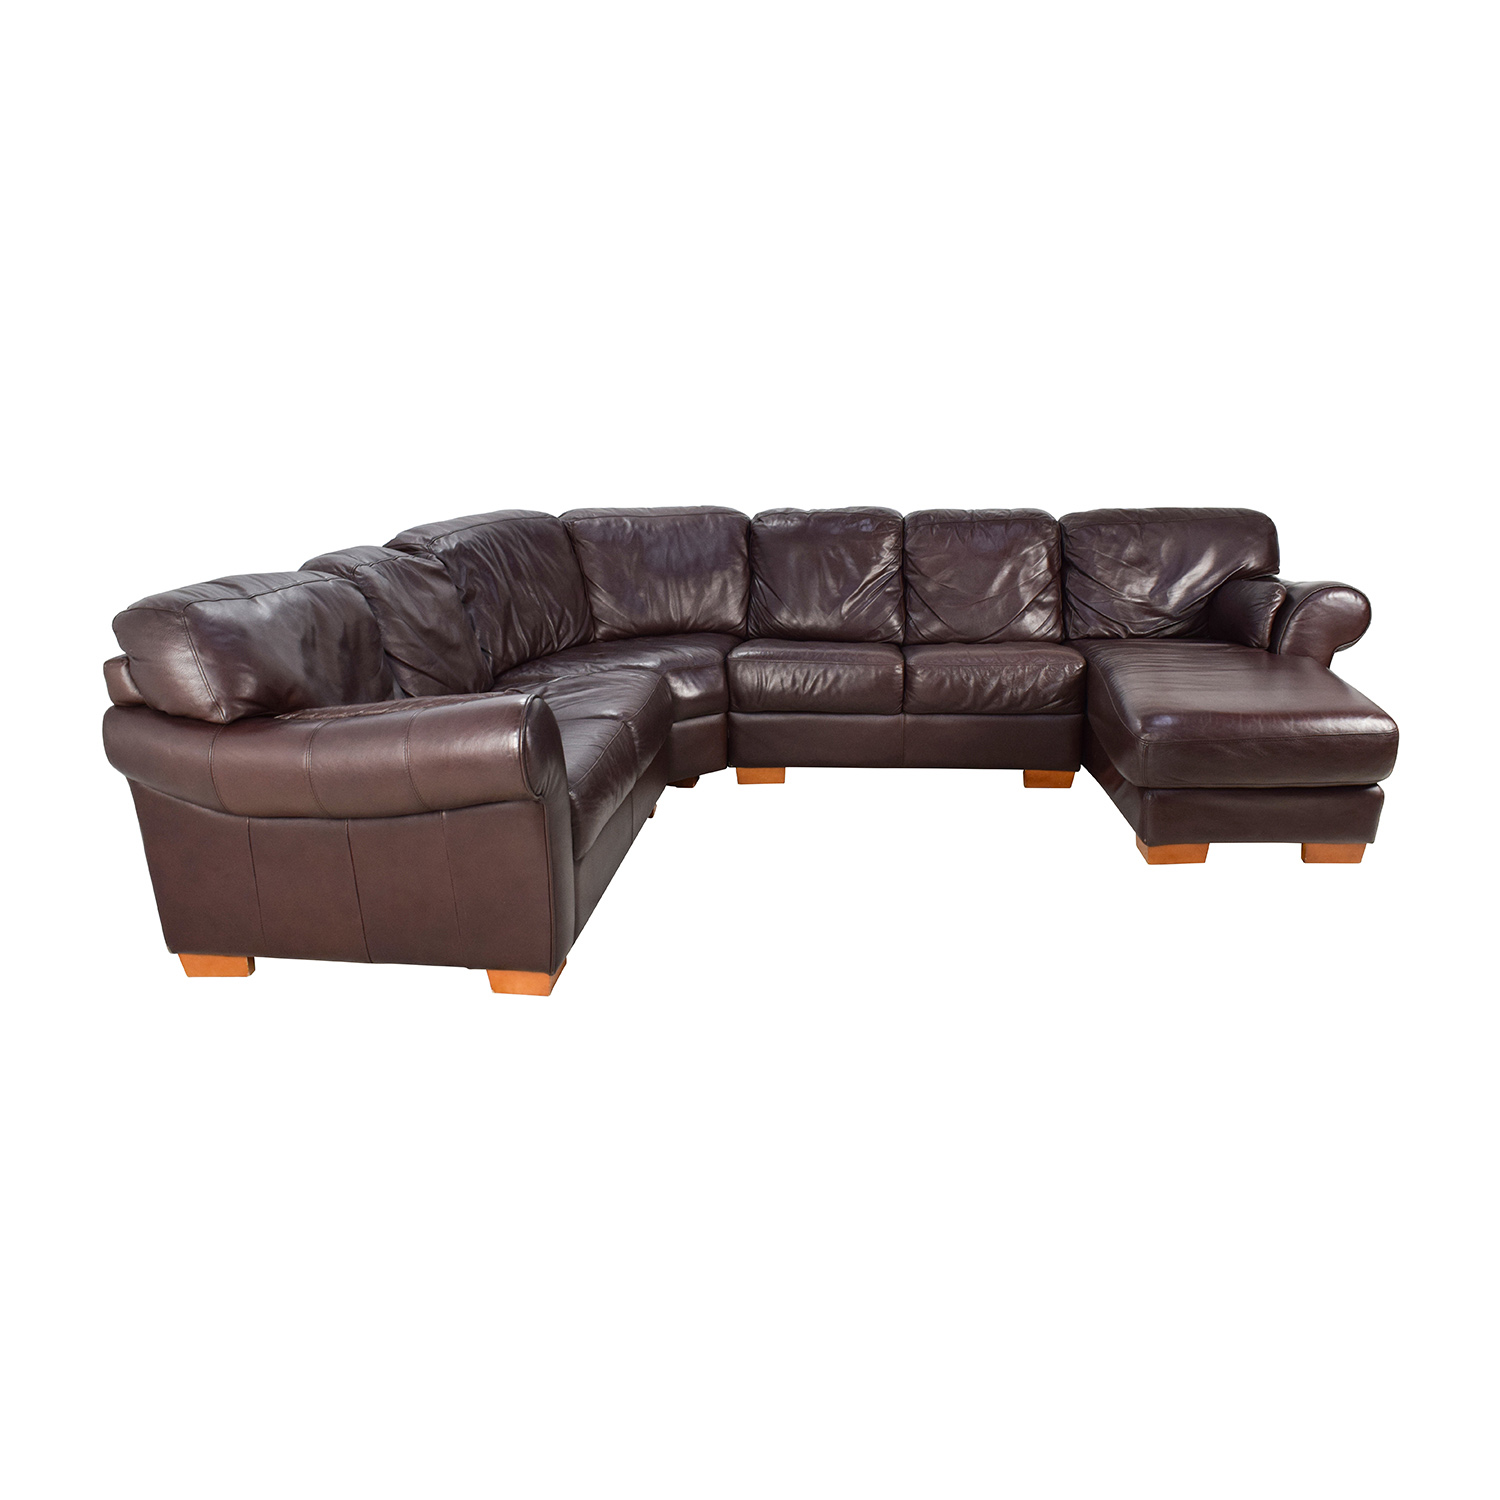 ... Raymour u0026 Flanigan Raymour u0026 Flanigan 4-Piece Leather Sectional ...  sc 1 st  Furnishare : raymour flanigan sectional - Sectionals, Sofas & Couches